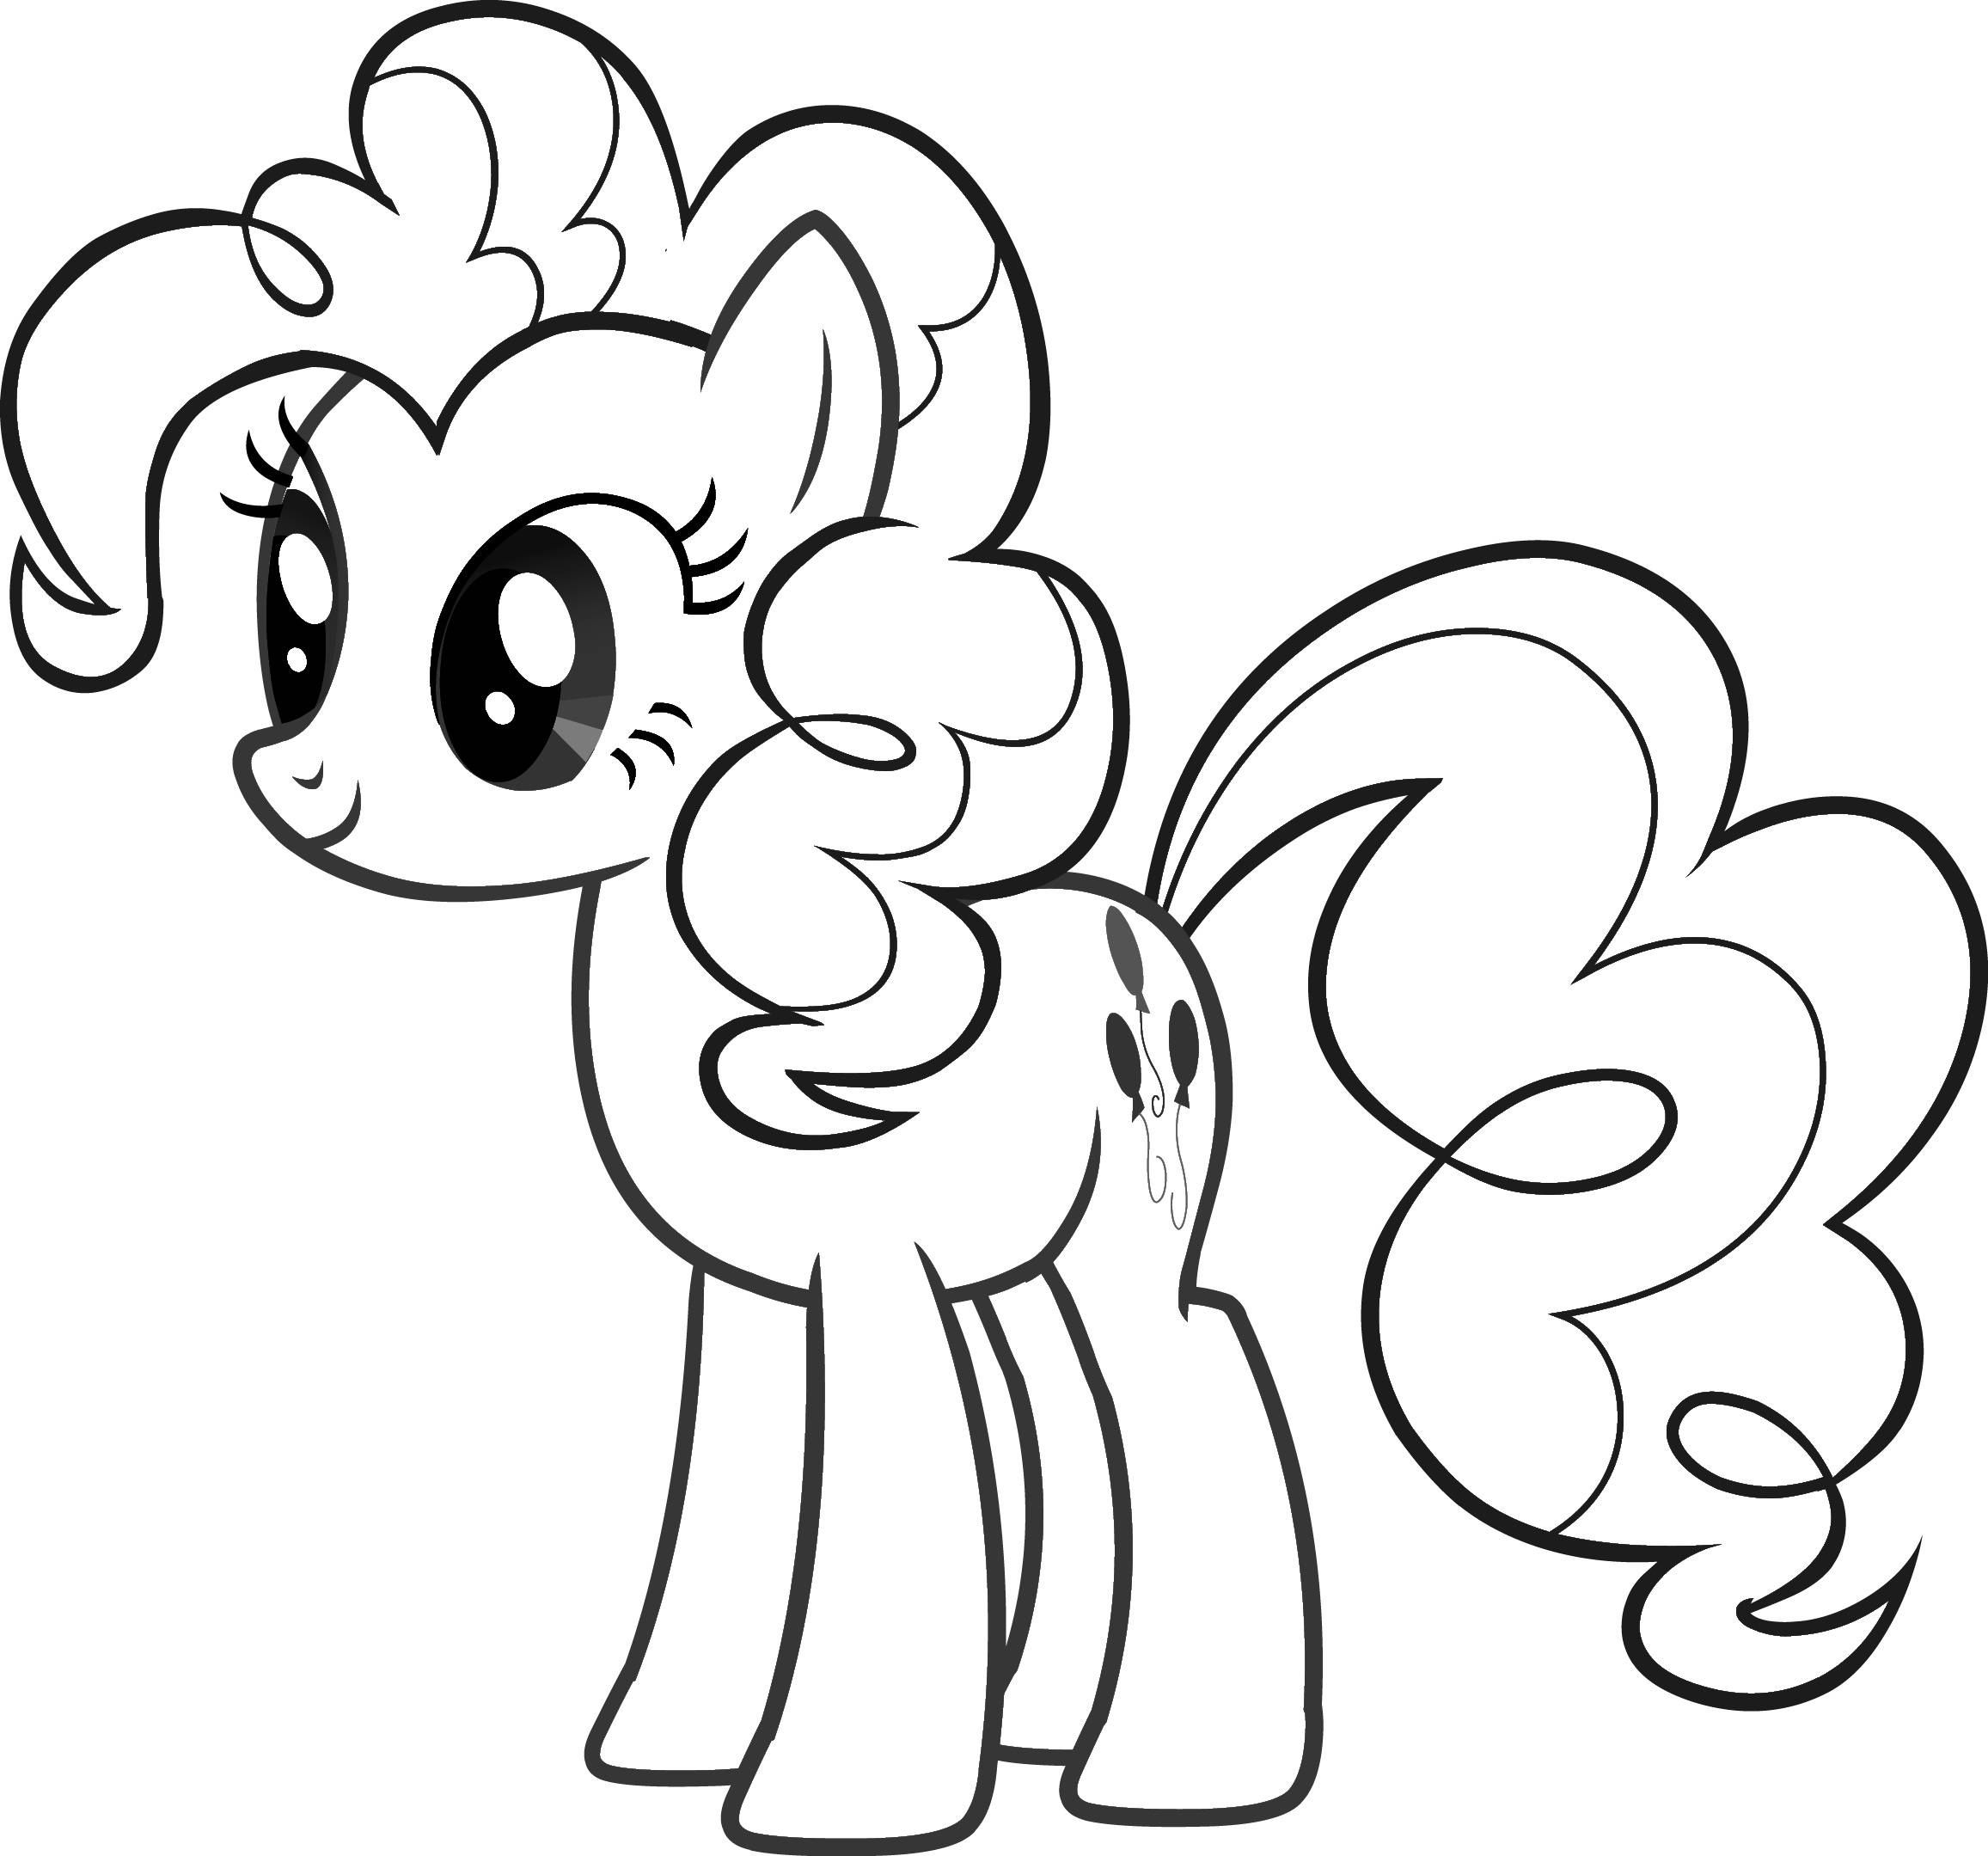 my little pony friendship is magic colouring pages my little pony coloring pages friendship is magic team my is pony magic friendship colouring little pages